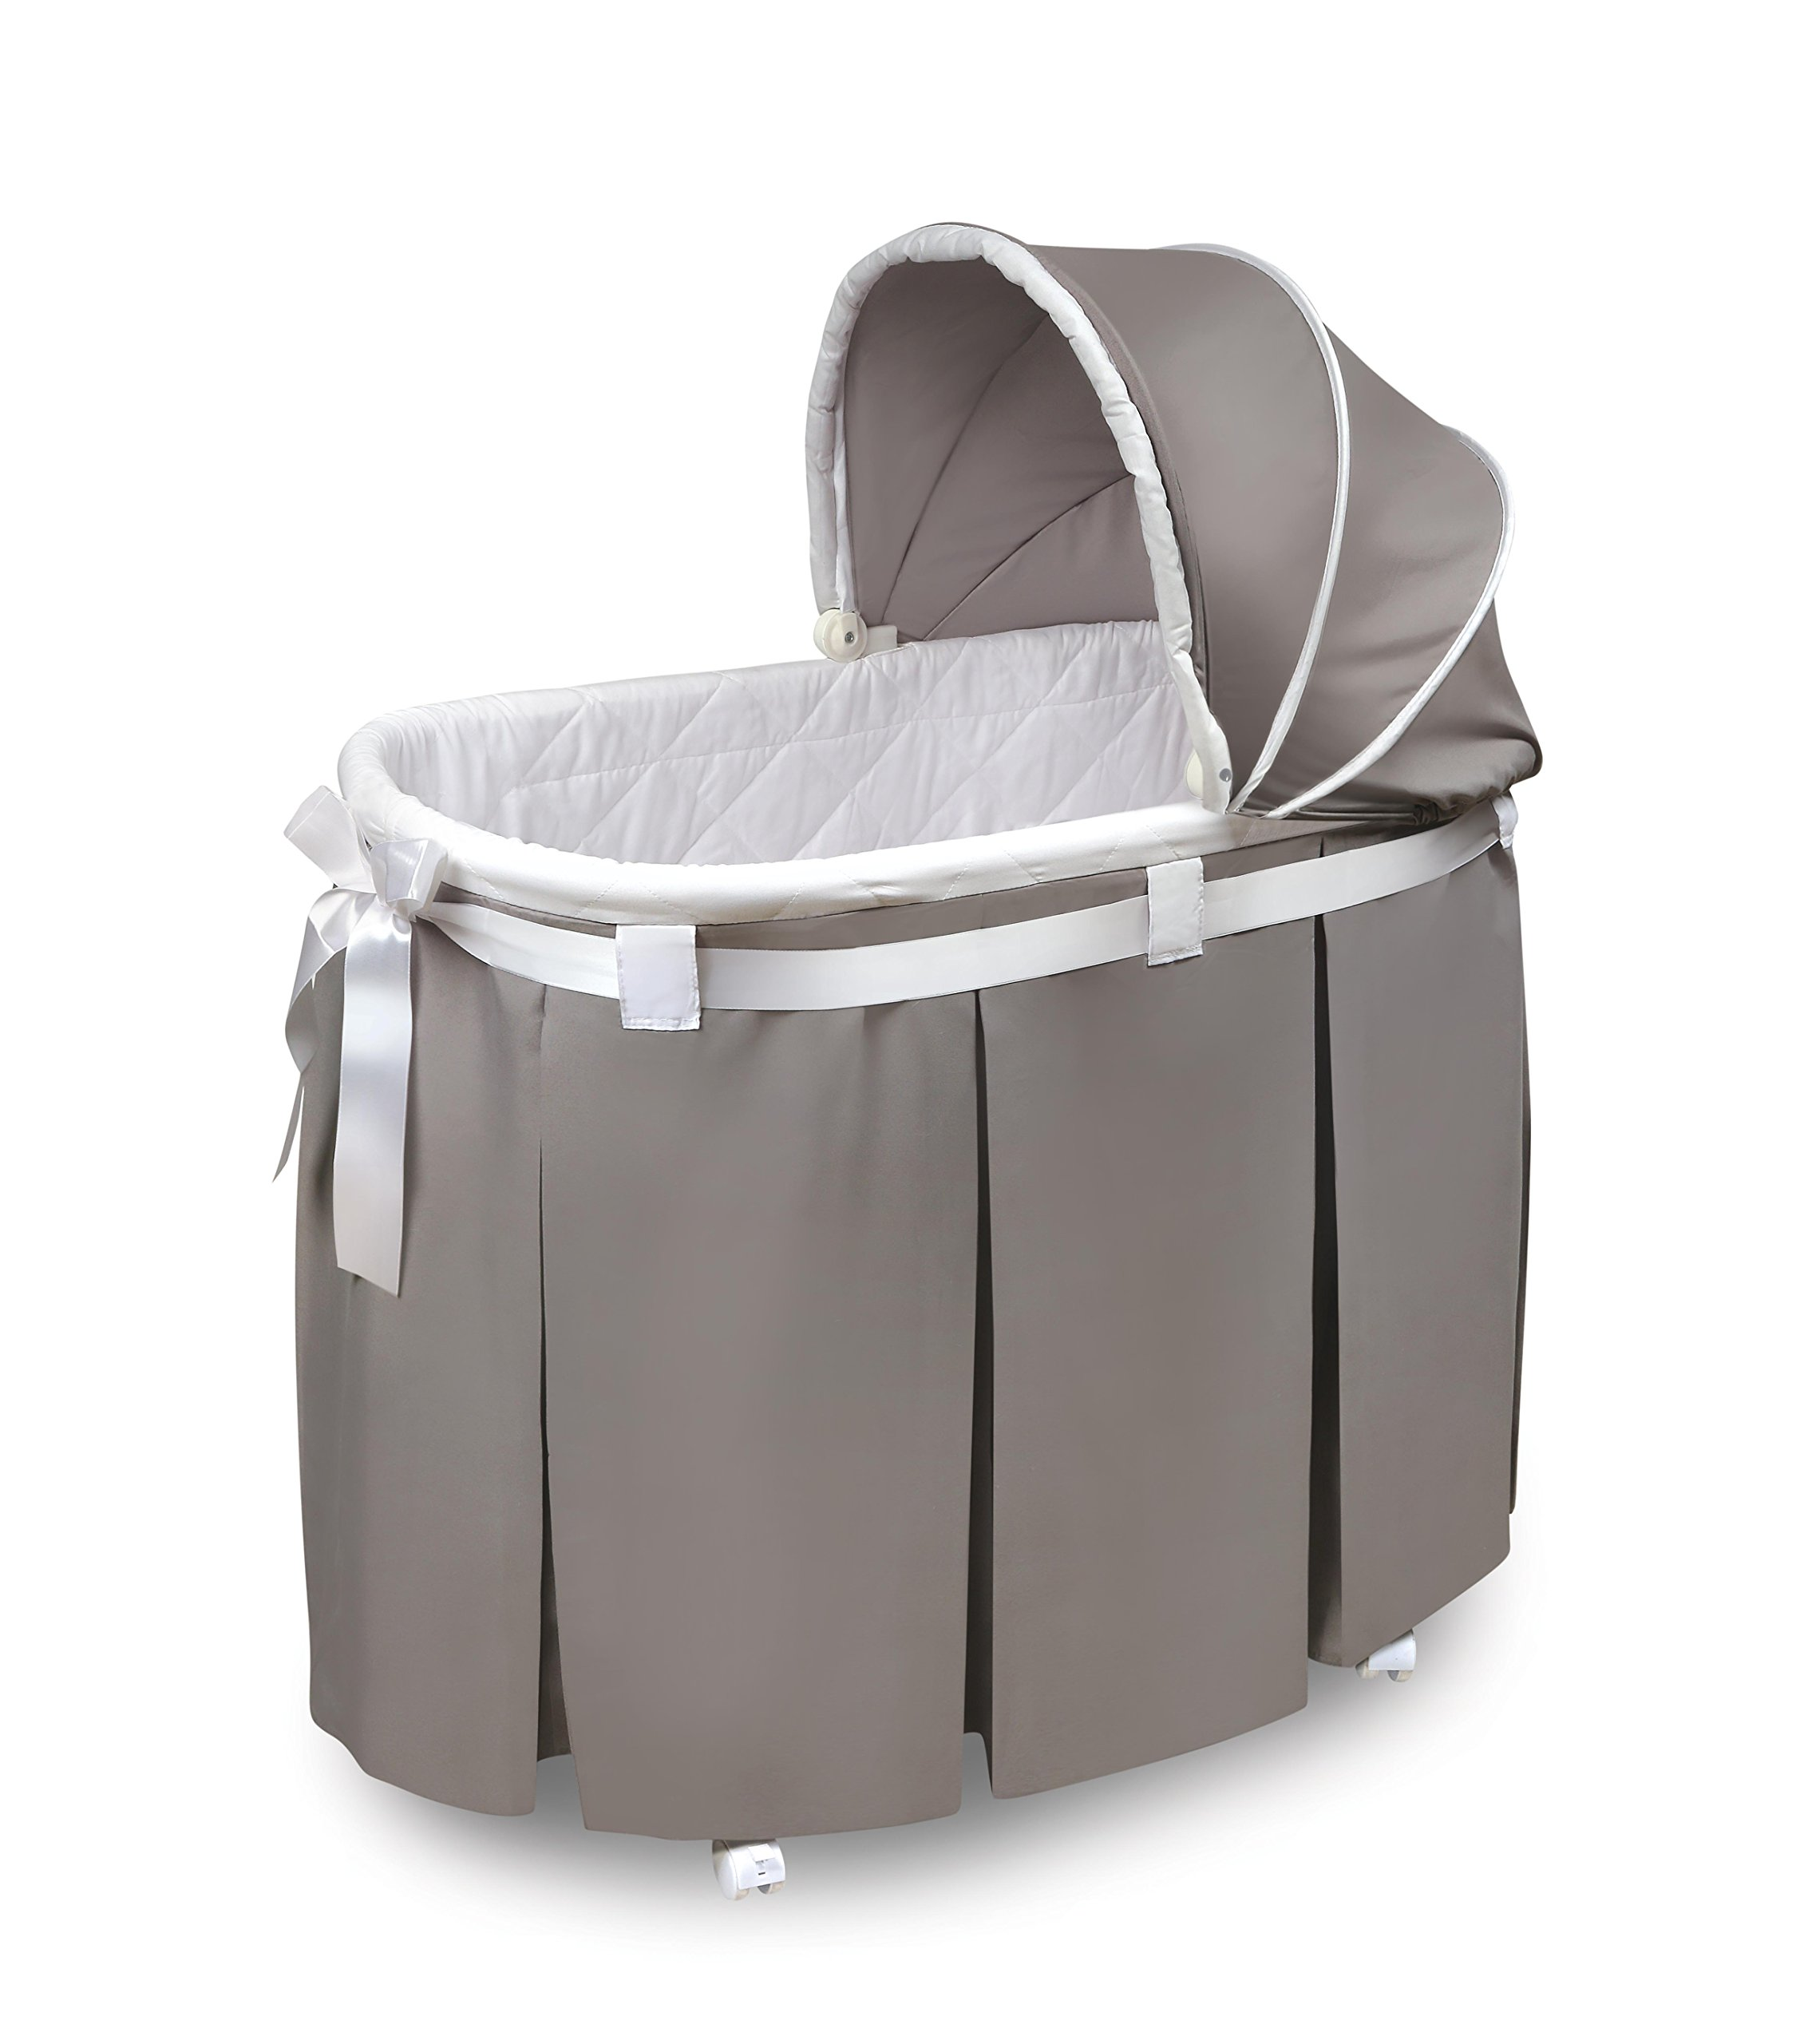 Badger Basket Wishes Oval Bassinet Full Length Skirt, Gray